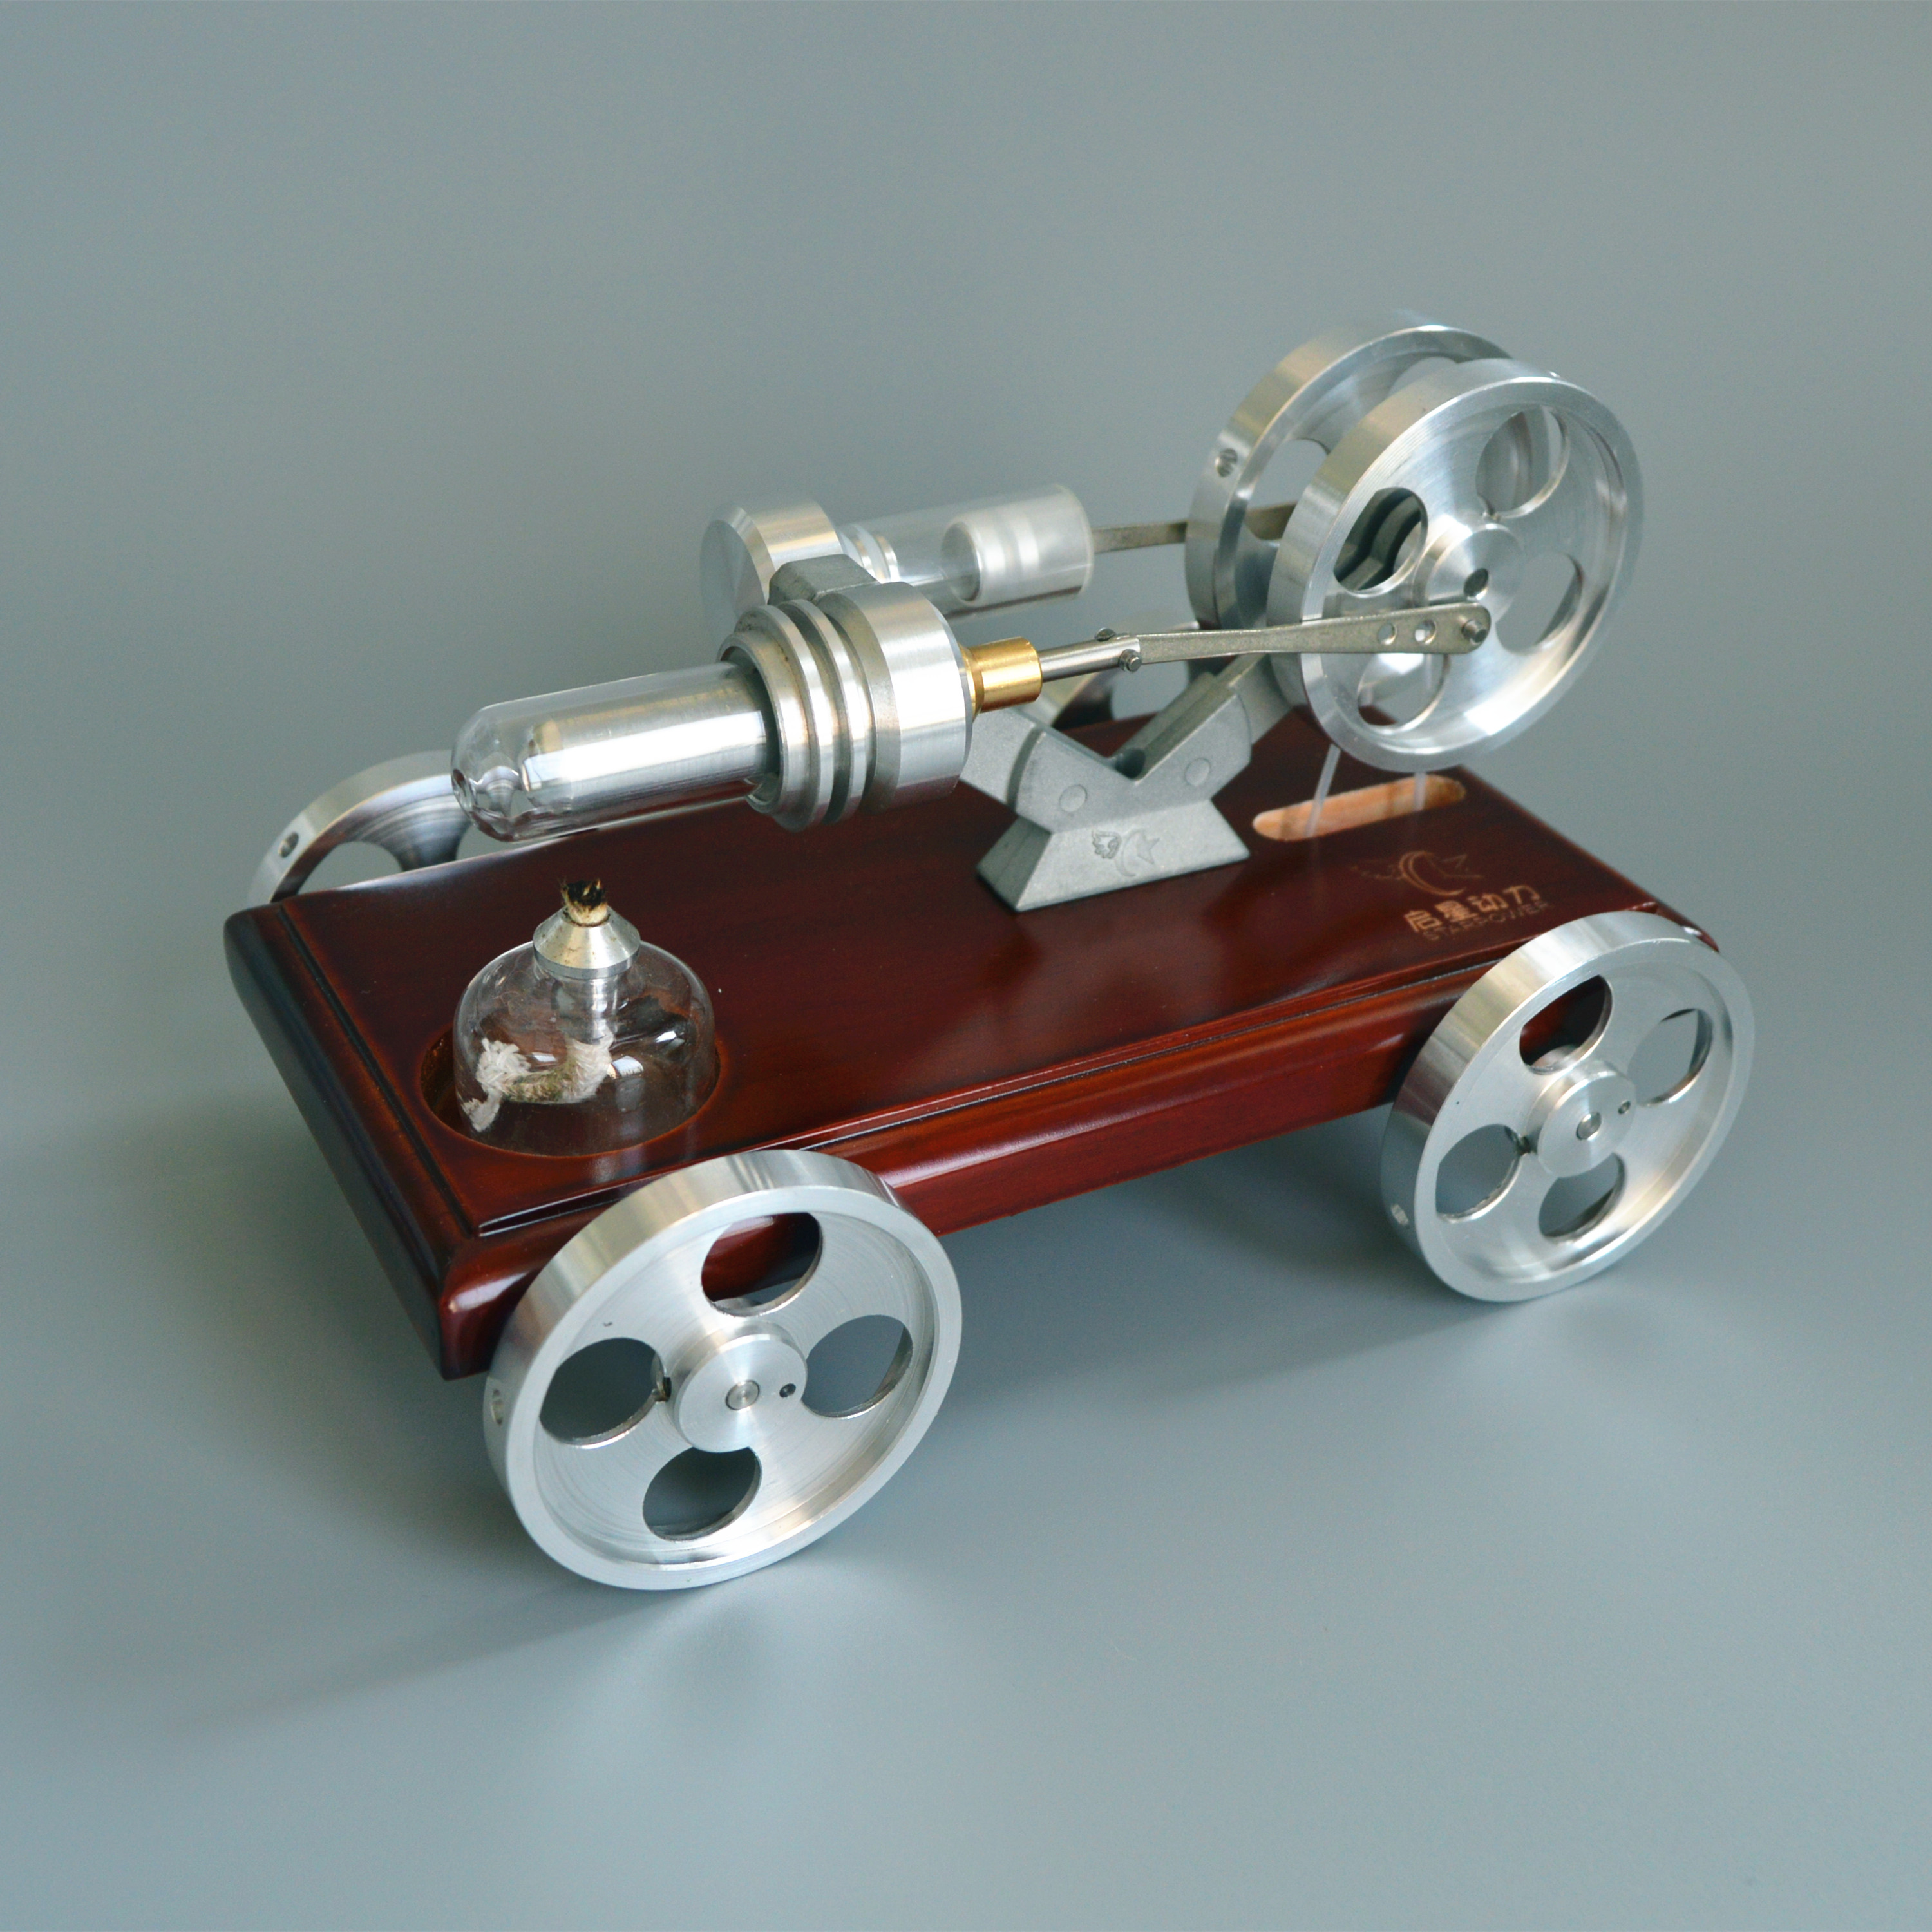 Mini Metal Stirling Engine Model Toy Car Environmental Science Experiment Small Vehicle Toy 180*108*116mm